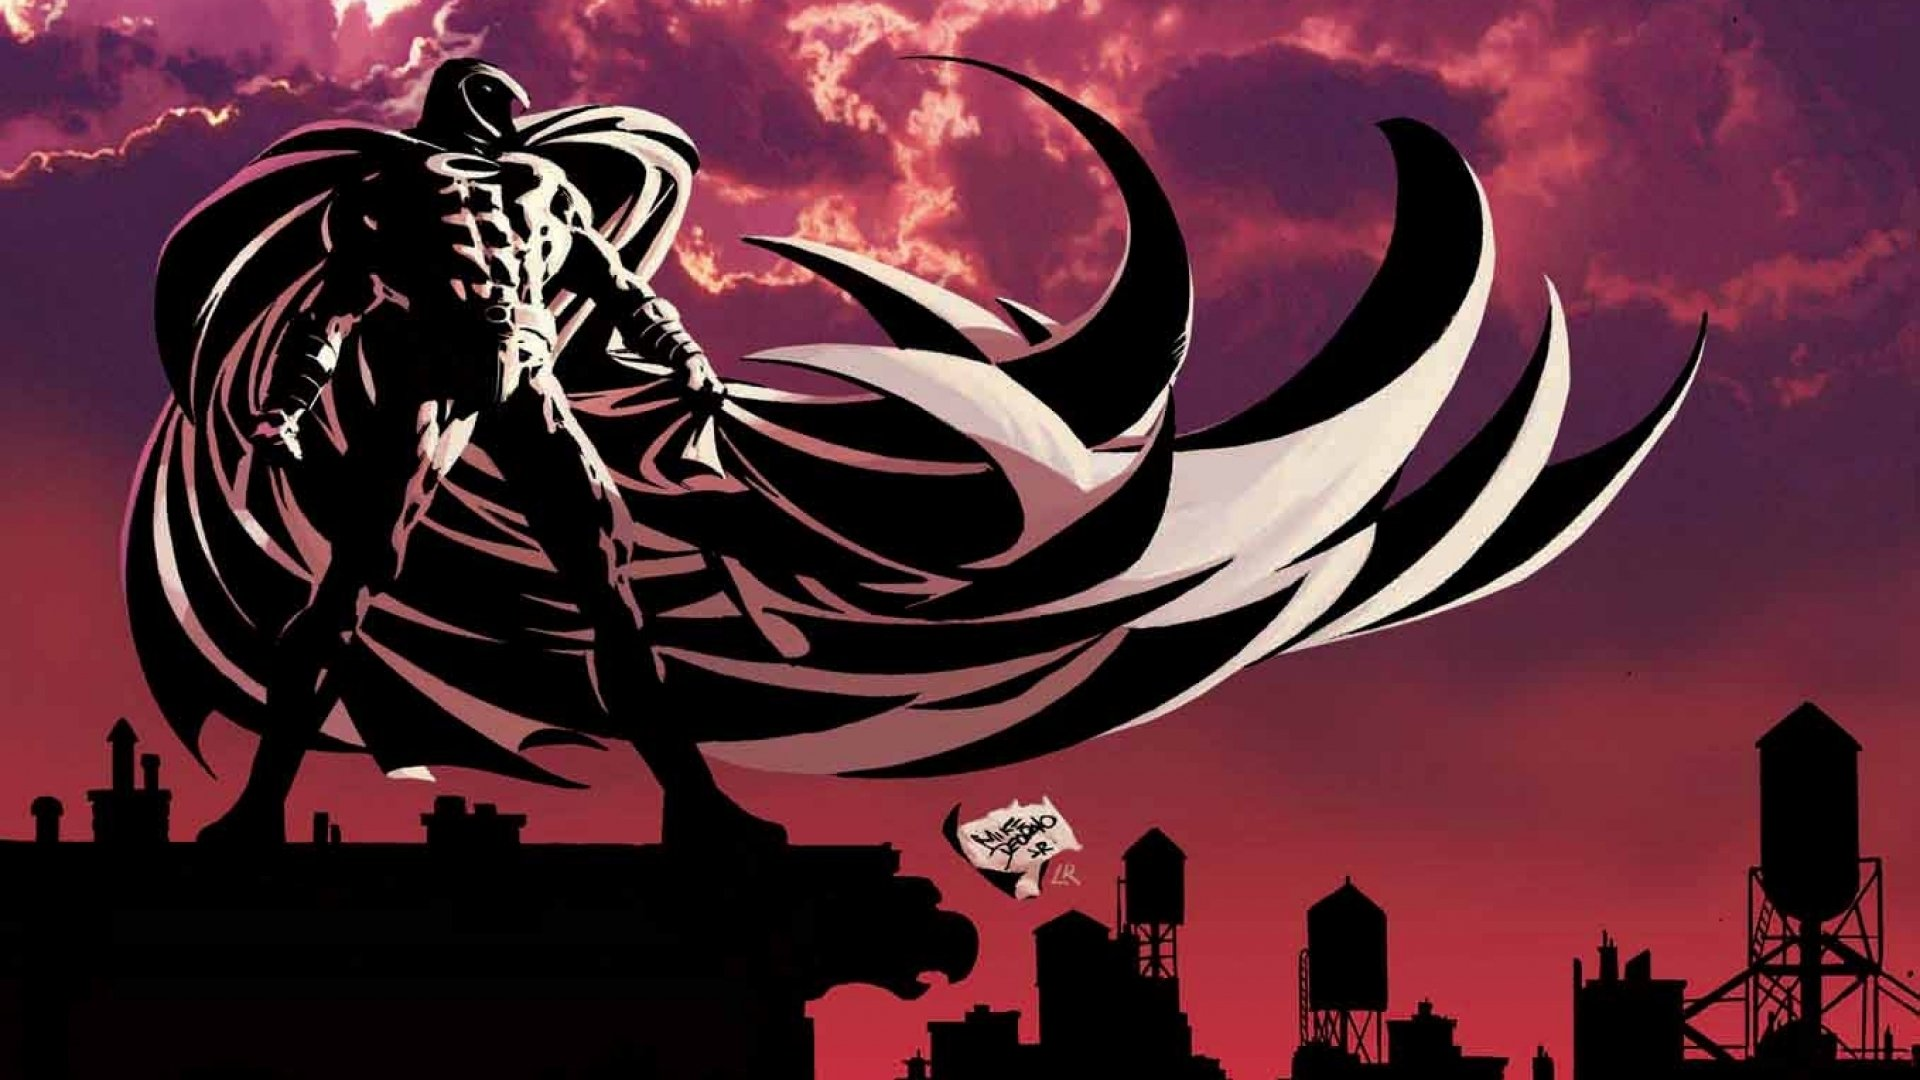 moon knight wallpaper images